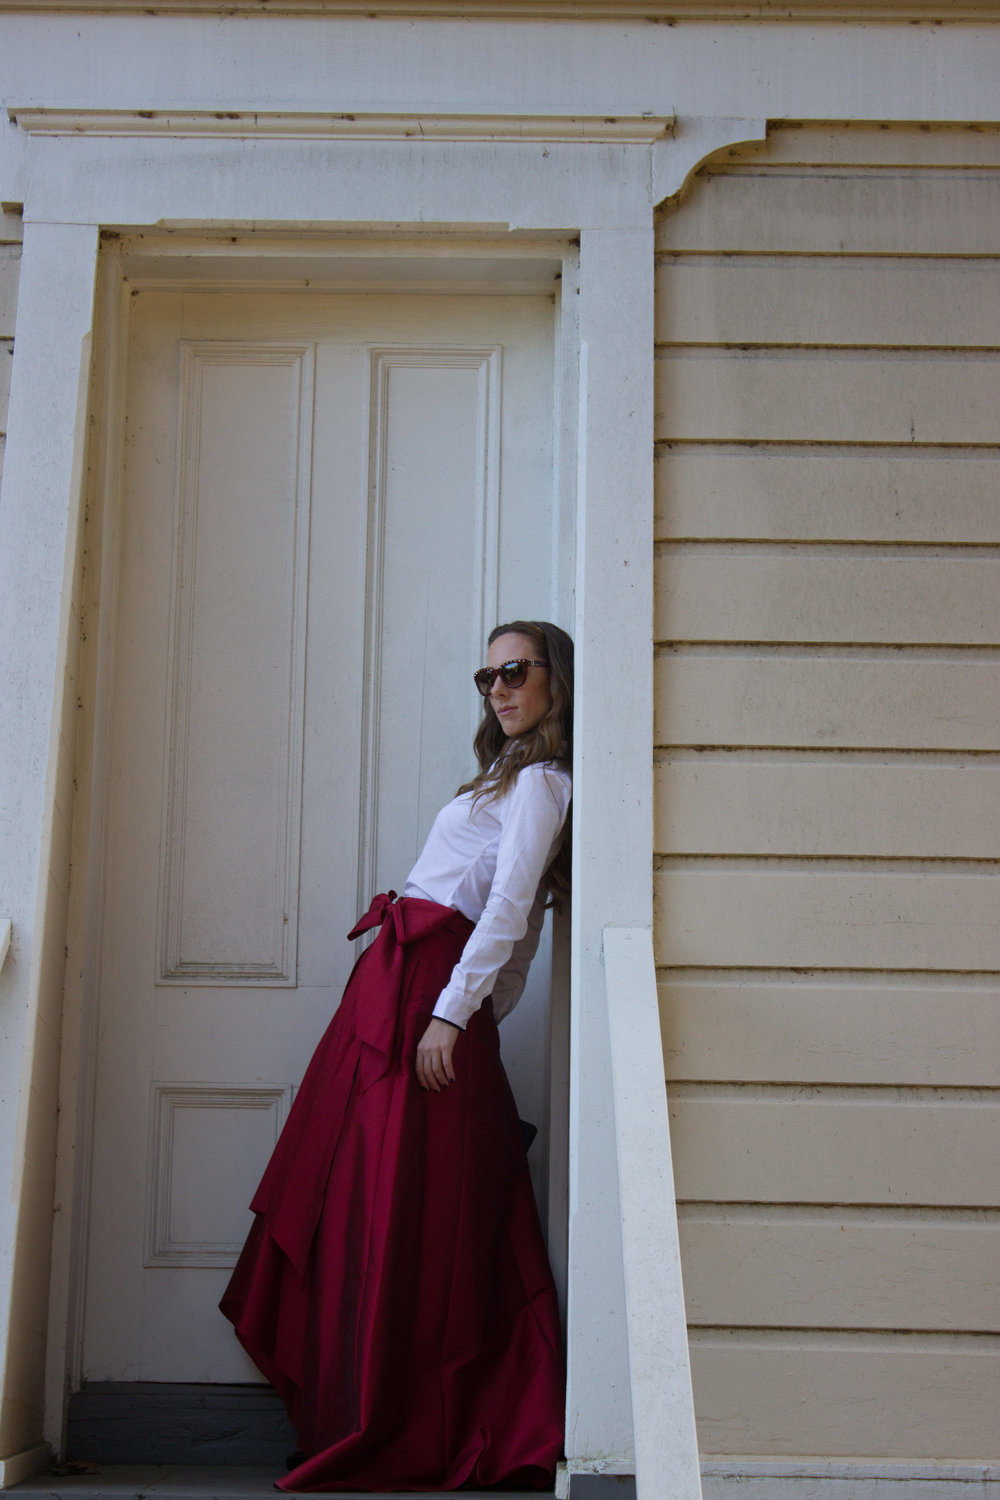 leaning-in-doorframe-ball-skirt.jpg